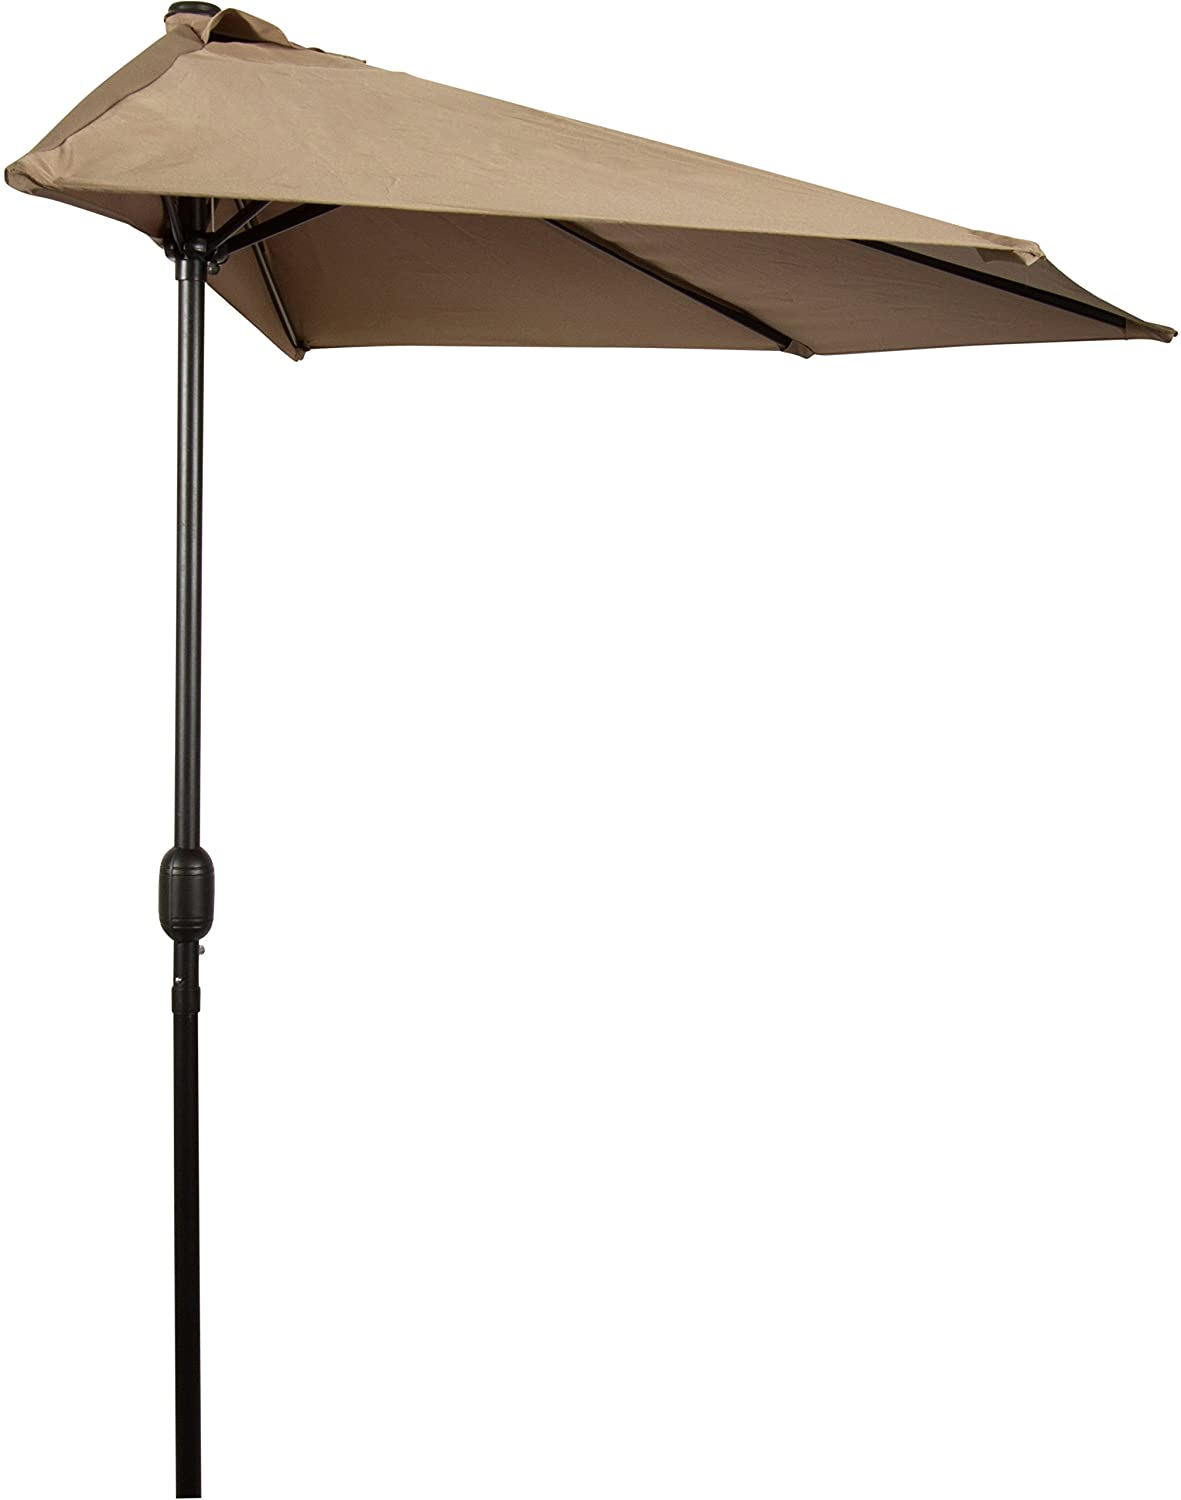 Amazon.com : Patio Half Umbrella   9u0027   By Trademark Innovations (Tan) :  Garden U0026 Outdoor